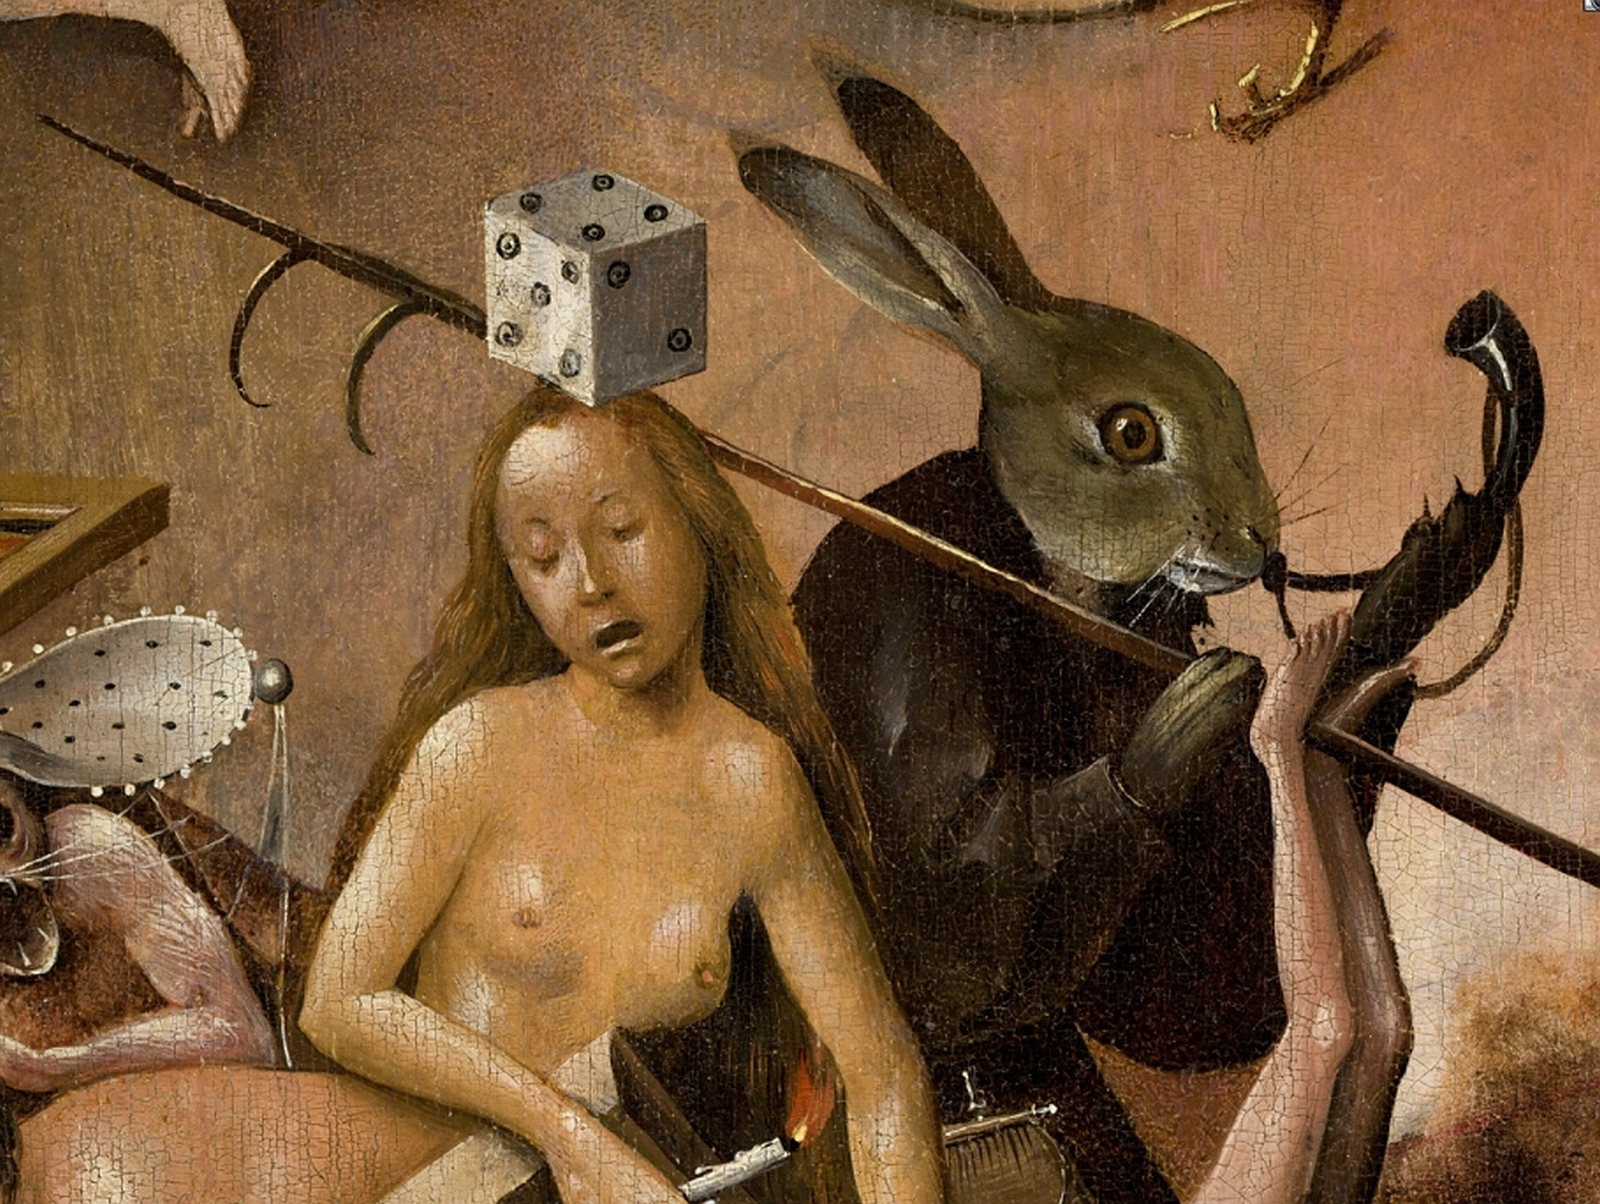 https://i0.wp.com/www.counter-currents.com/wp-content/uploads/2013/03/Bosch_Hieronymus_-_The_Garden_of_Earthly_Delights_right_panel_-_Detail-_Rabbit.jpg